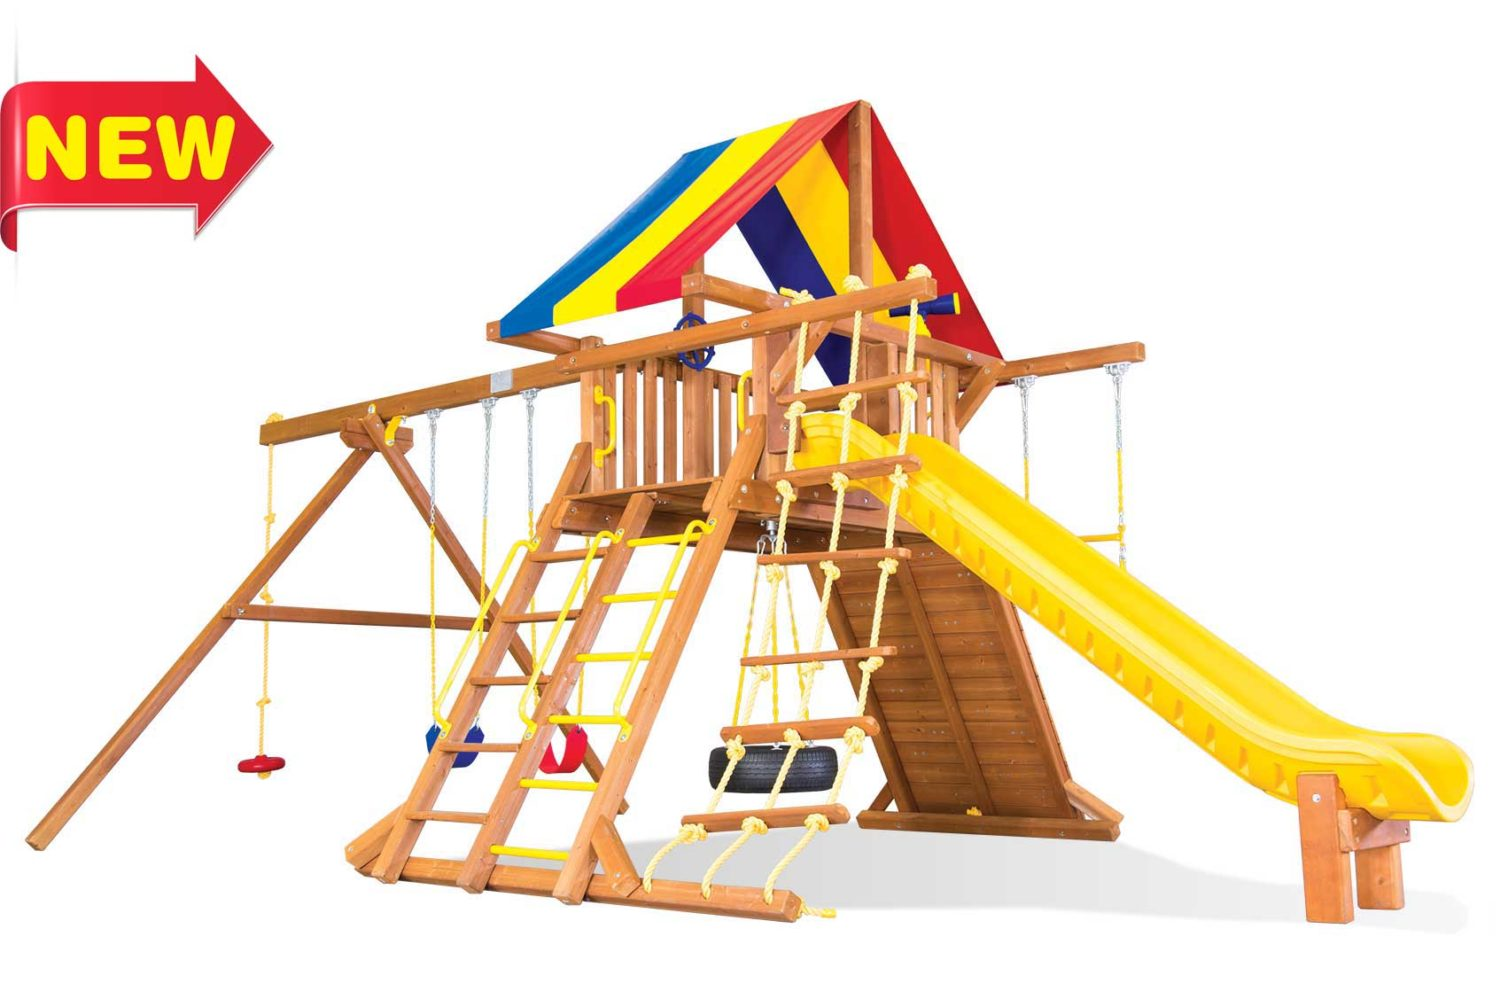 Circus Super Turbo Castle Pkg II Wooden Swing Sets